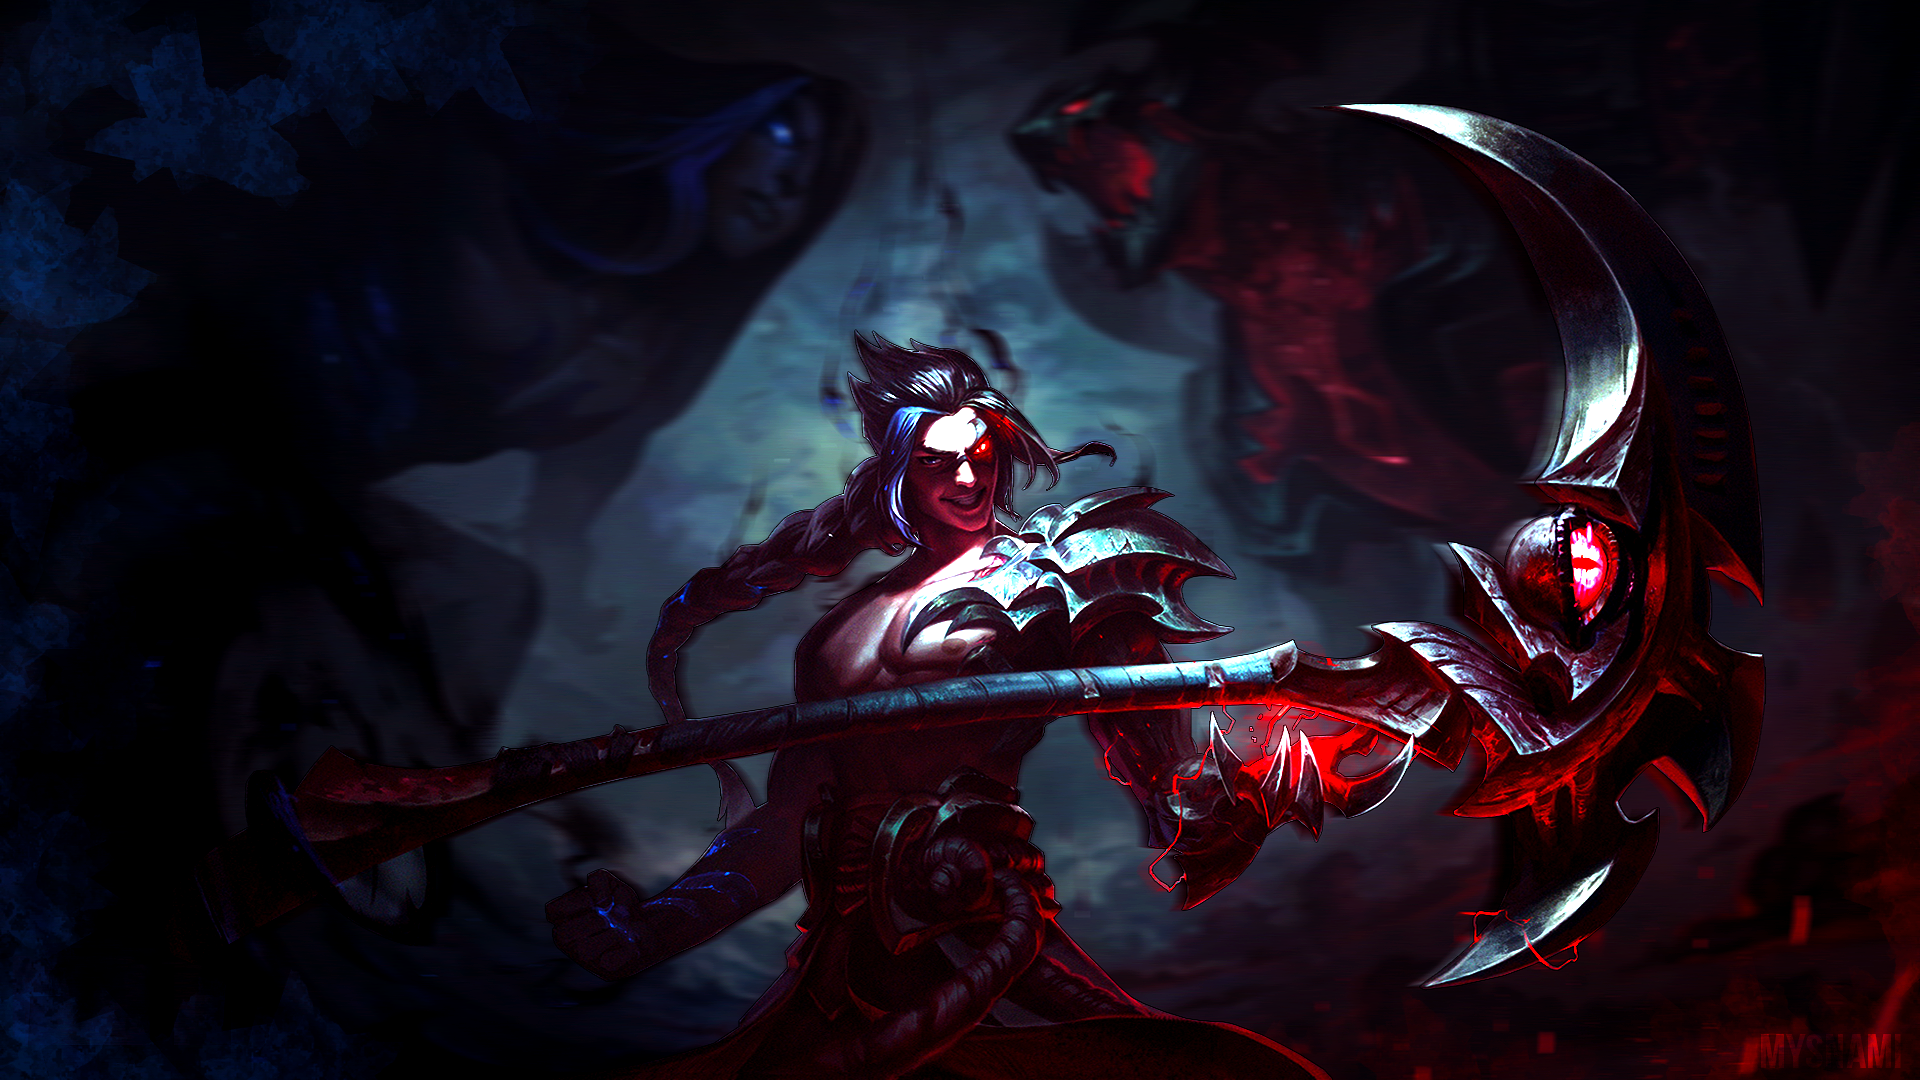 [Resim: kayn_wallpaper_by_ember2607-dbecouj.png]